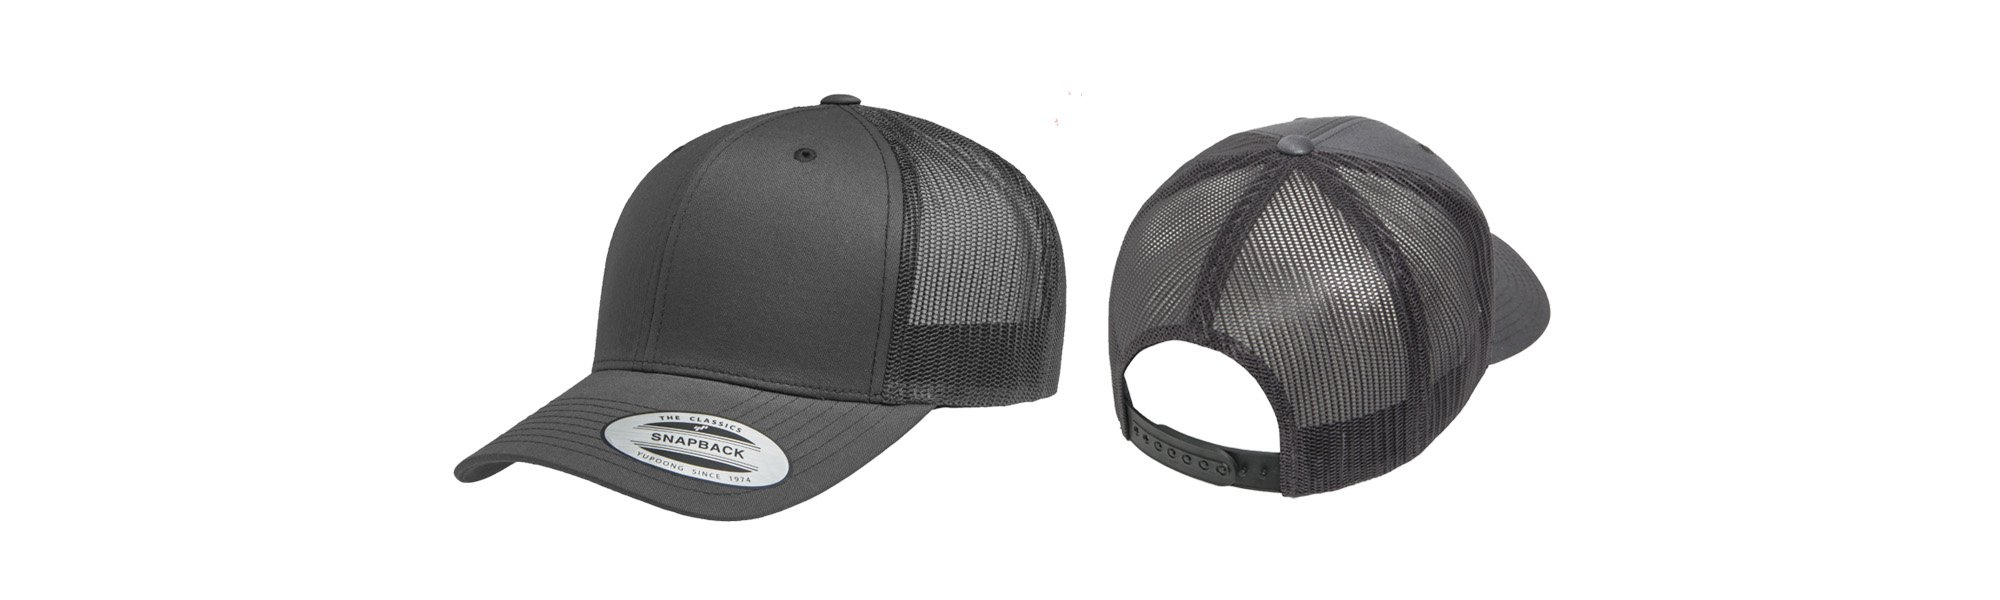 e4eca27546563 Our Retro/Trucker Flexfit style features a buckram reinforced front and mesh  side and back panels. Available in single color or two-tone this style only  ...